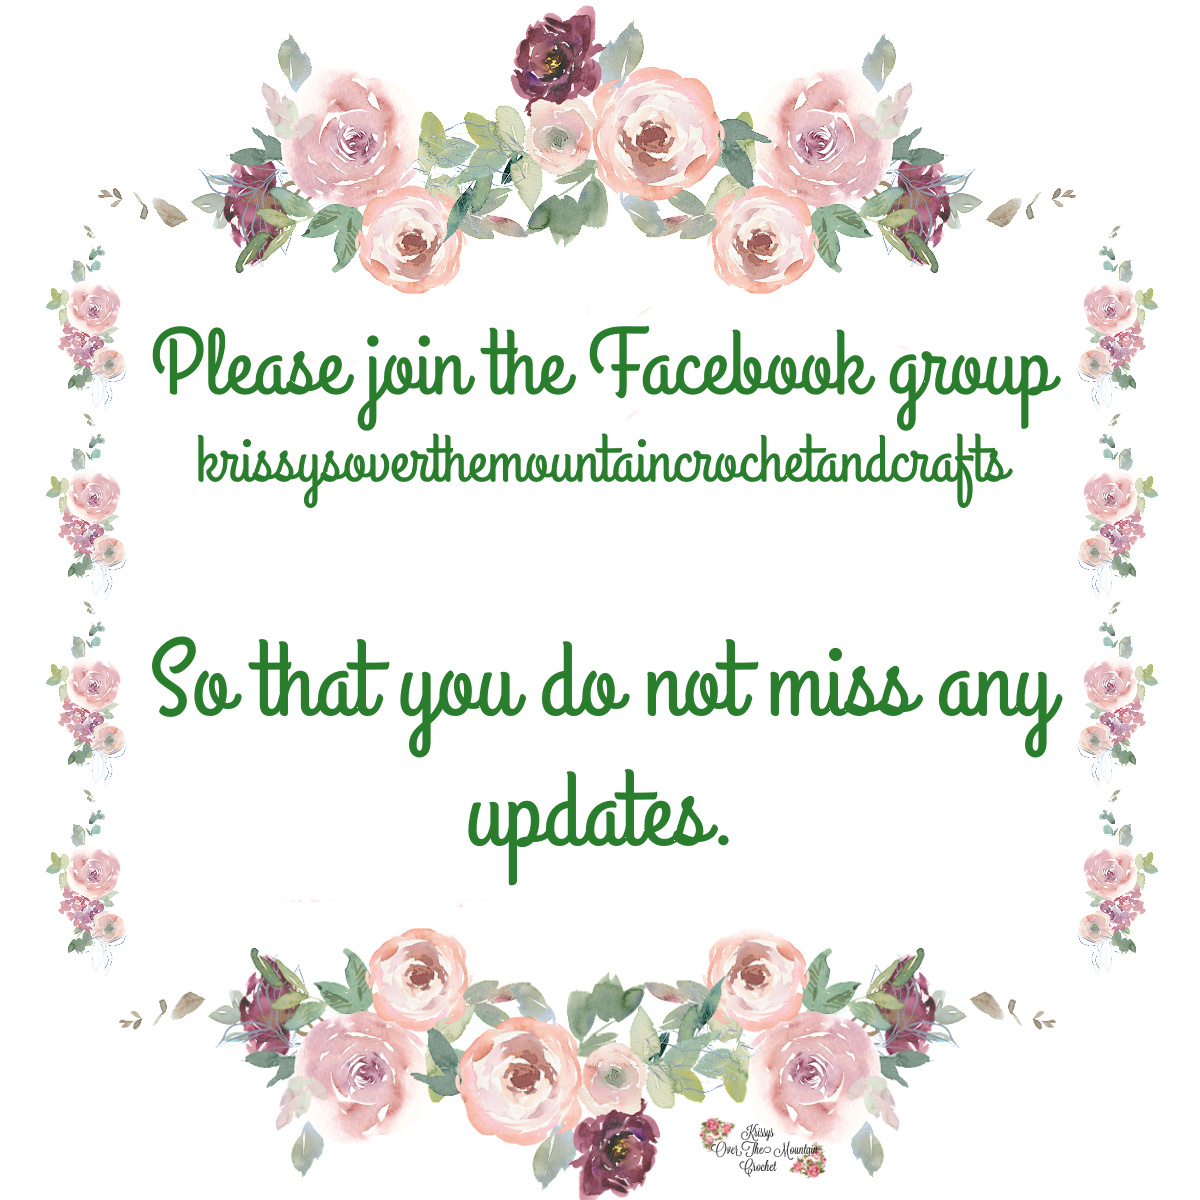 Please join the facebook grouphttps://www.facebook.com/groups/krissysoverthemountaincrochetandcrafts so that you don't miss any updates.